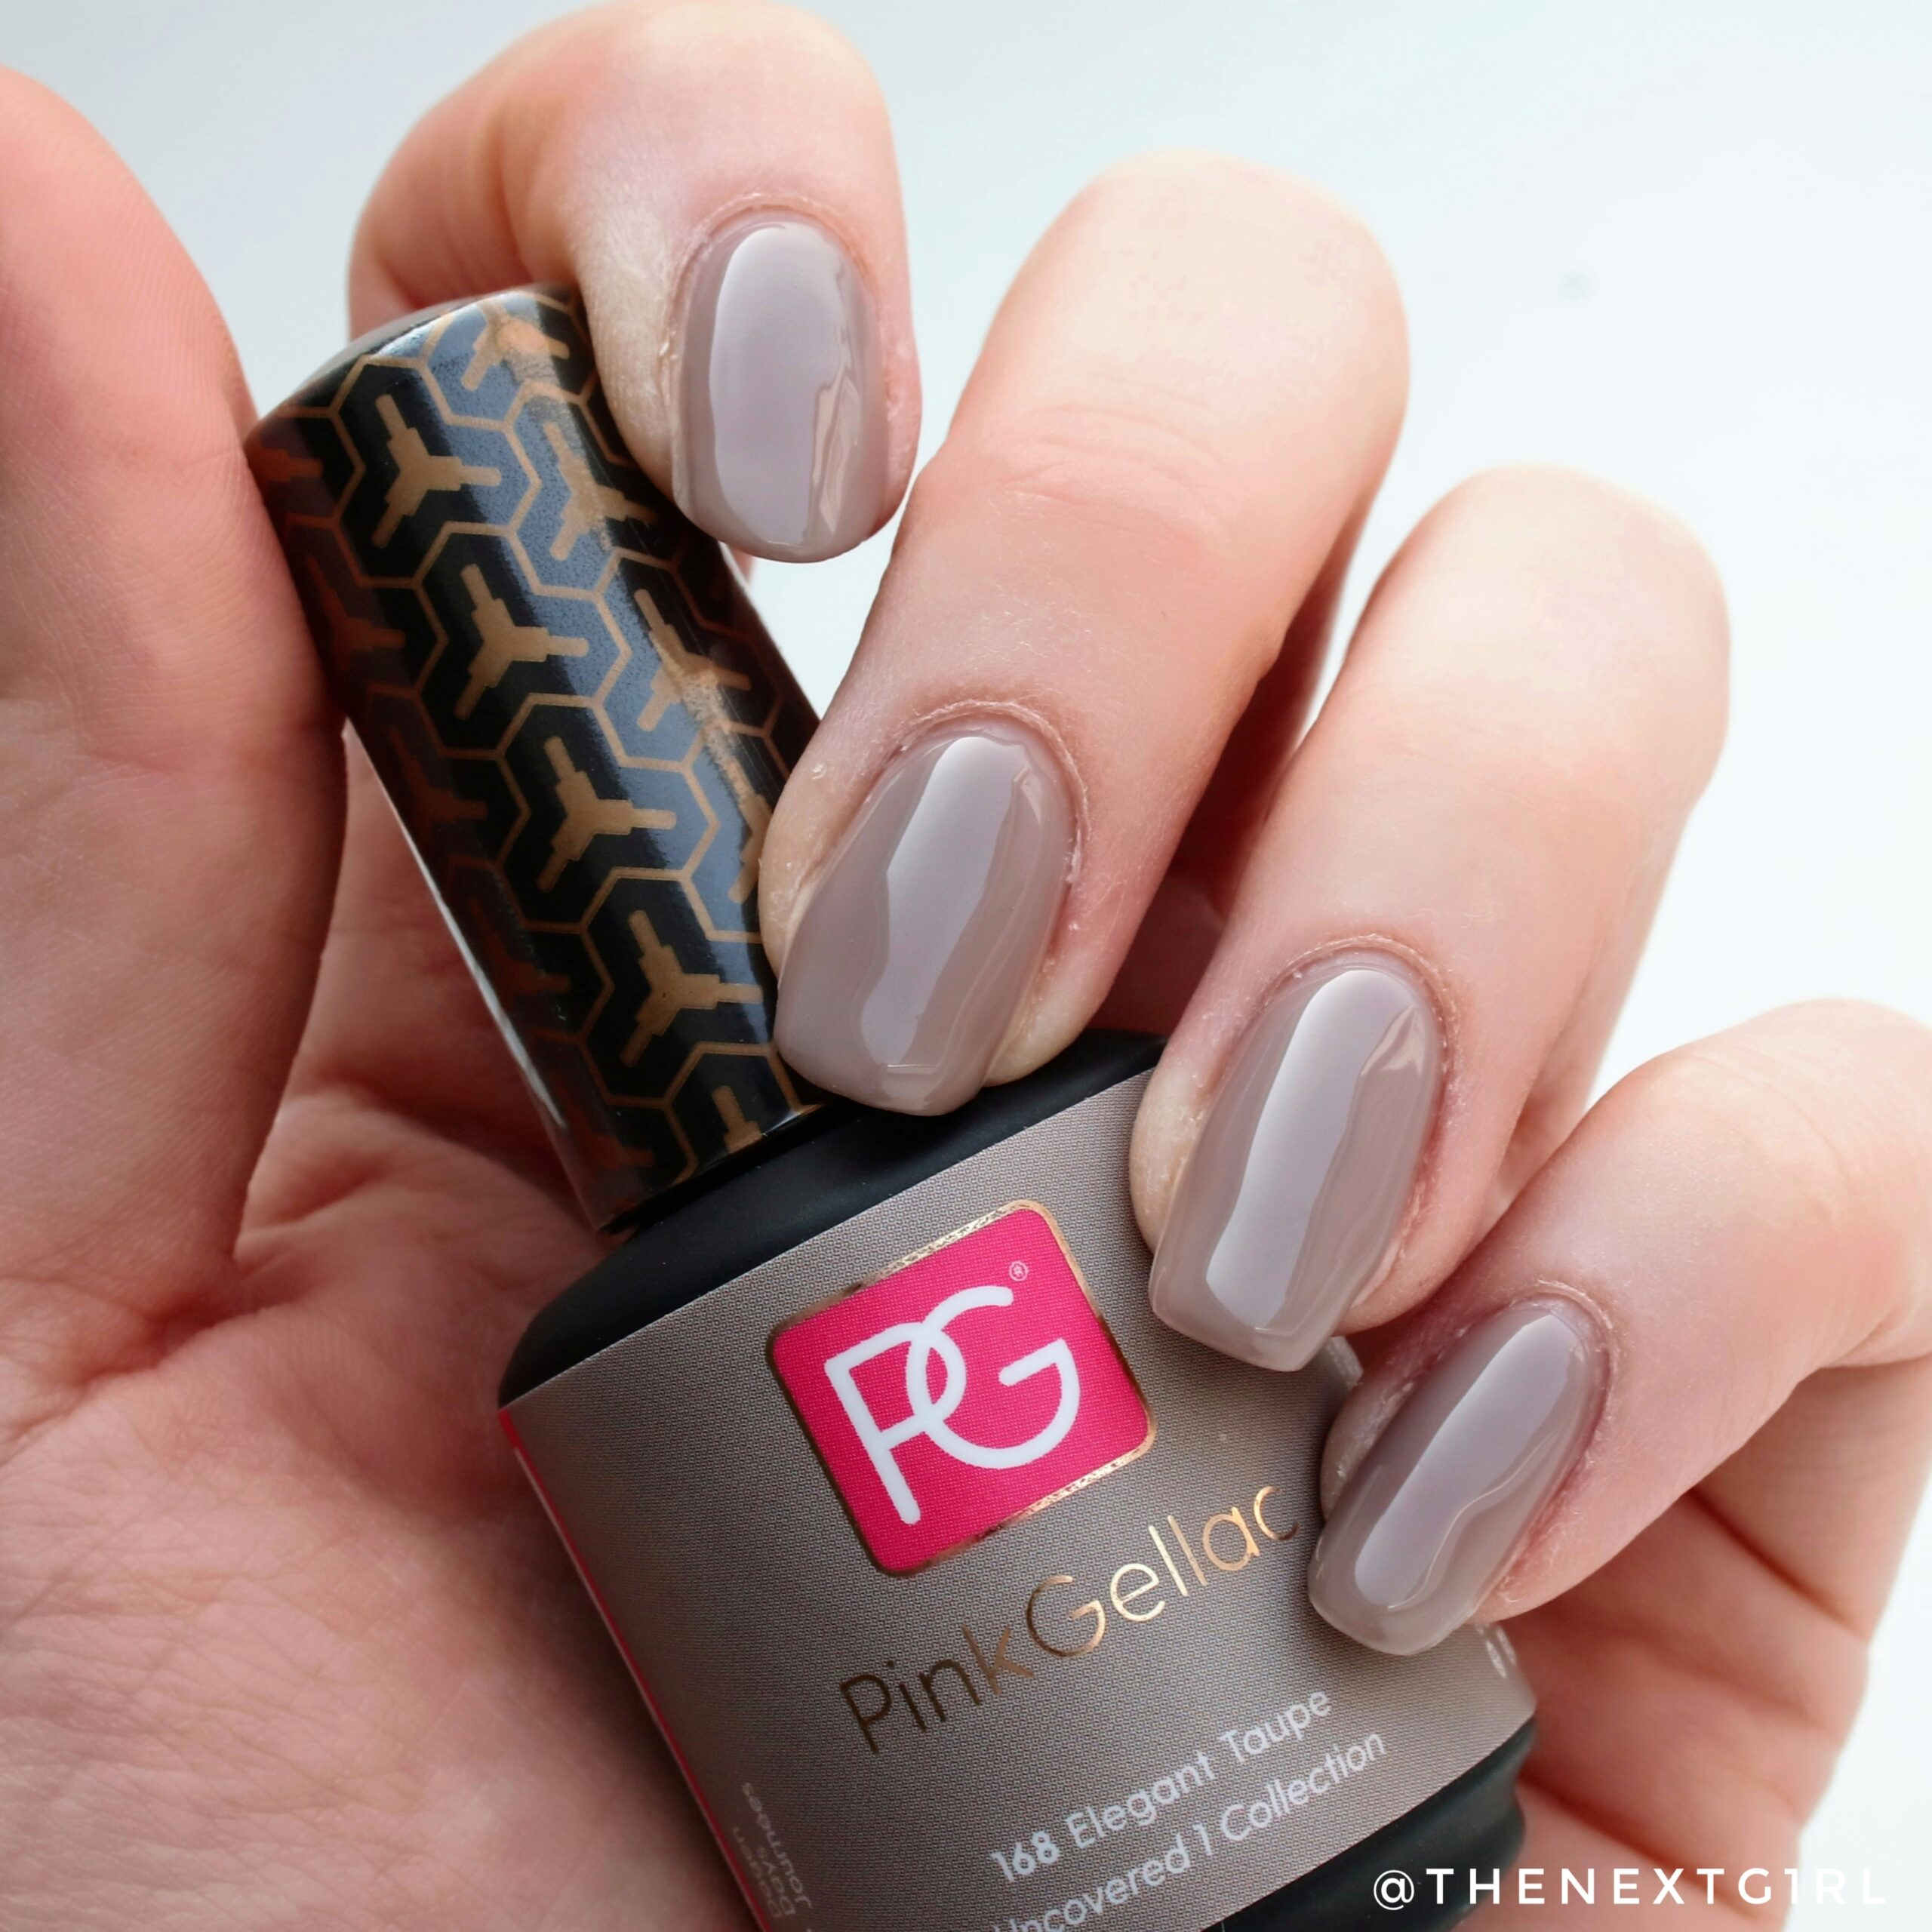 PinkGellac 168 Elegant Taupe Uncovered swatch